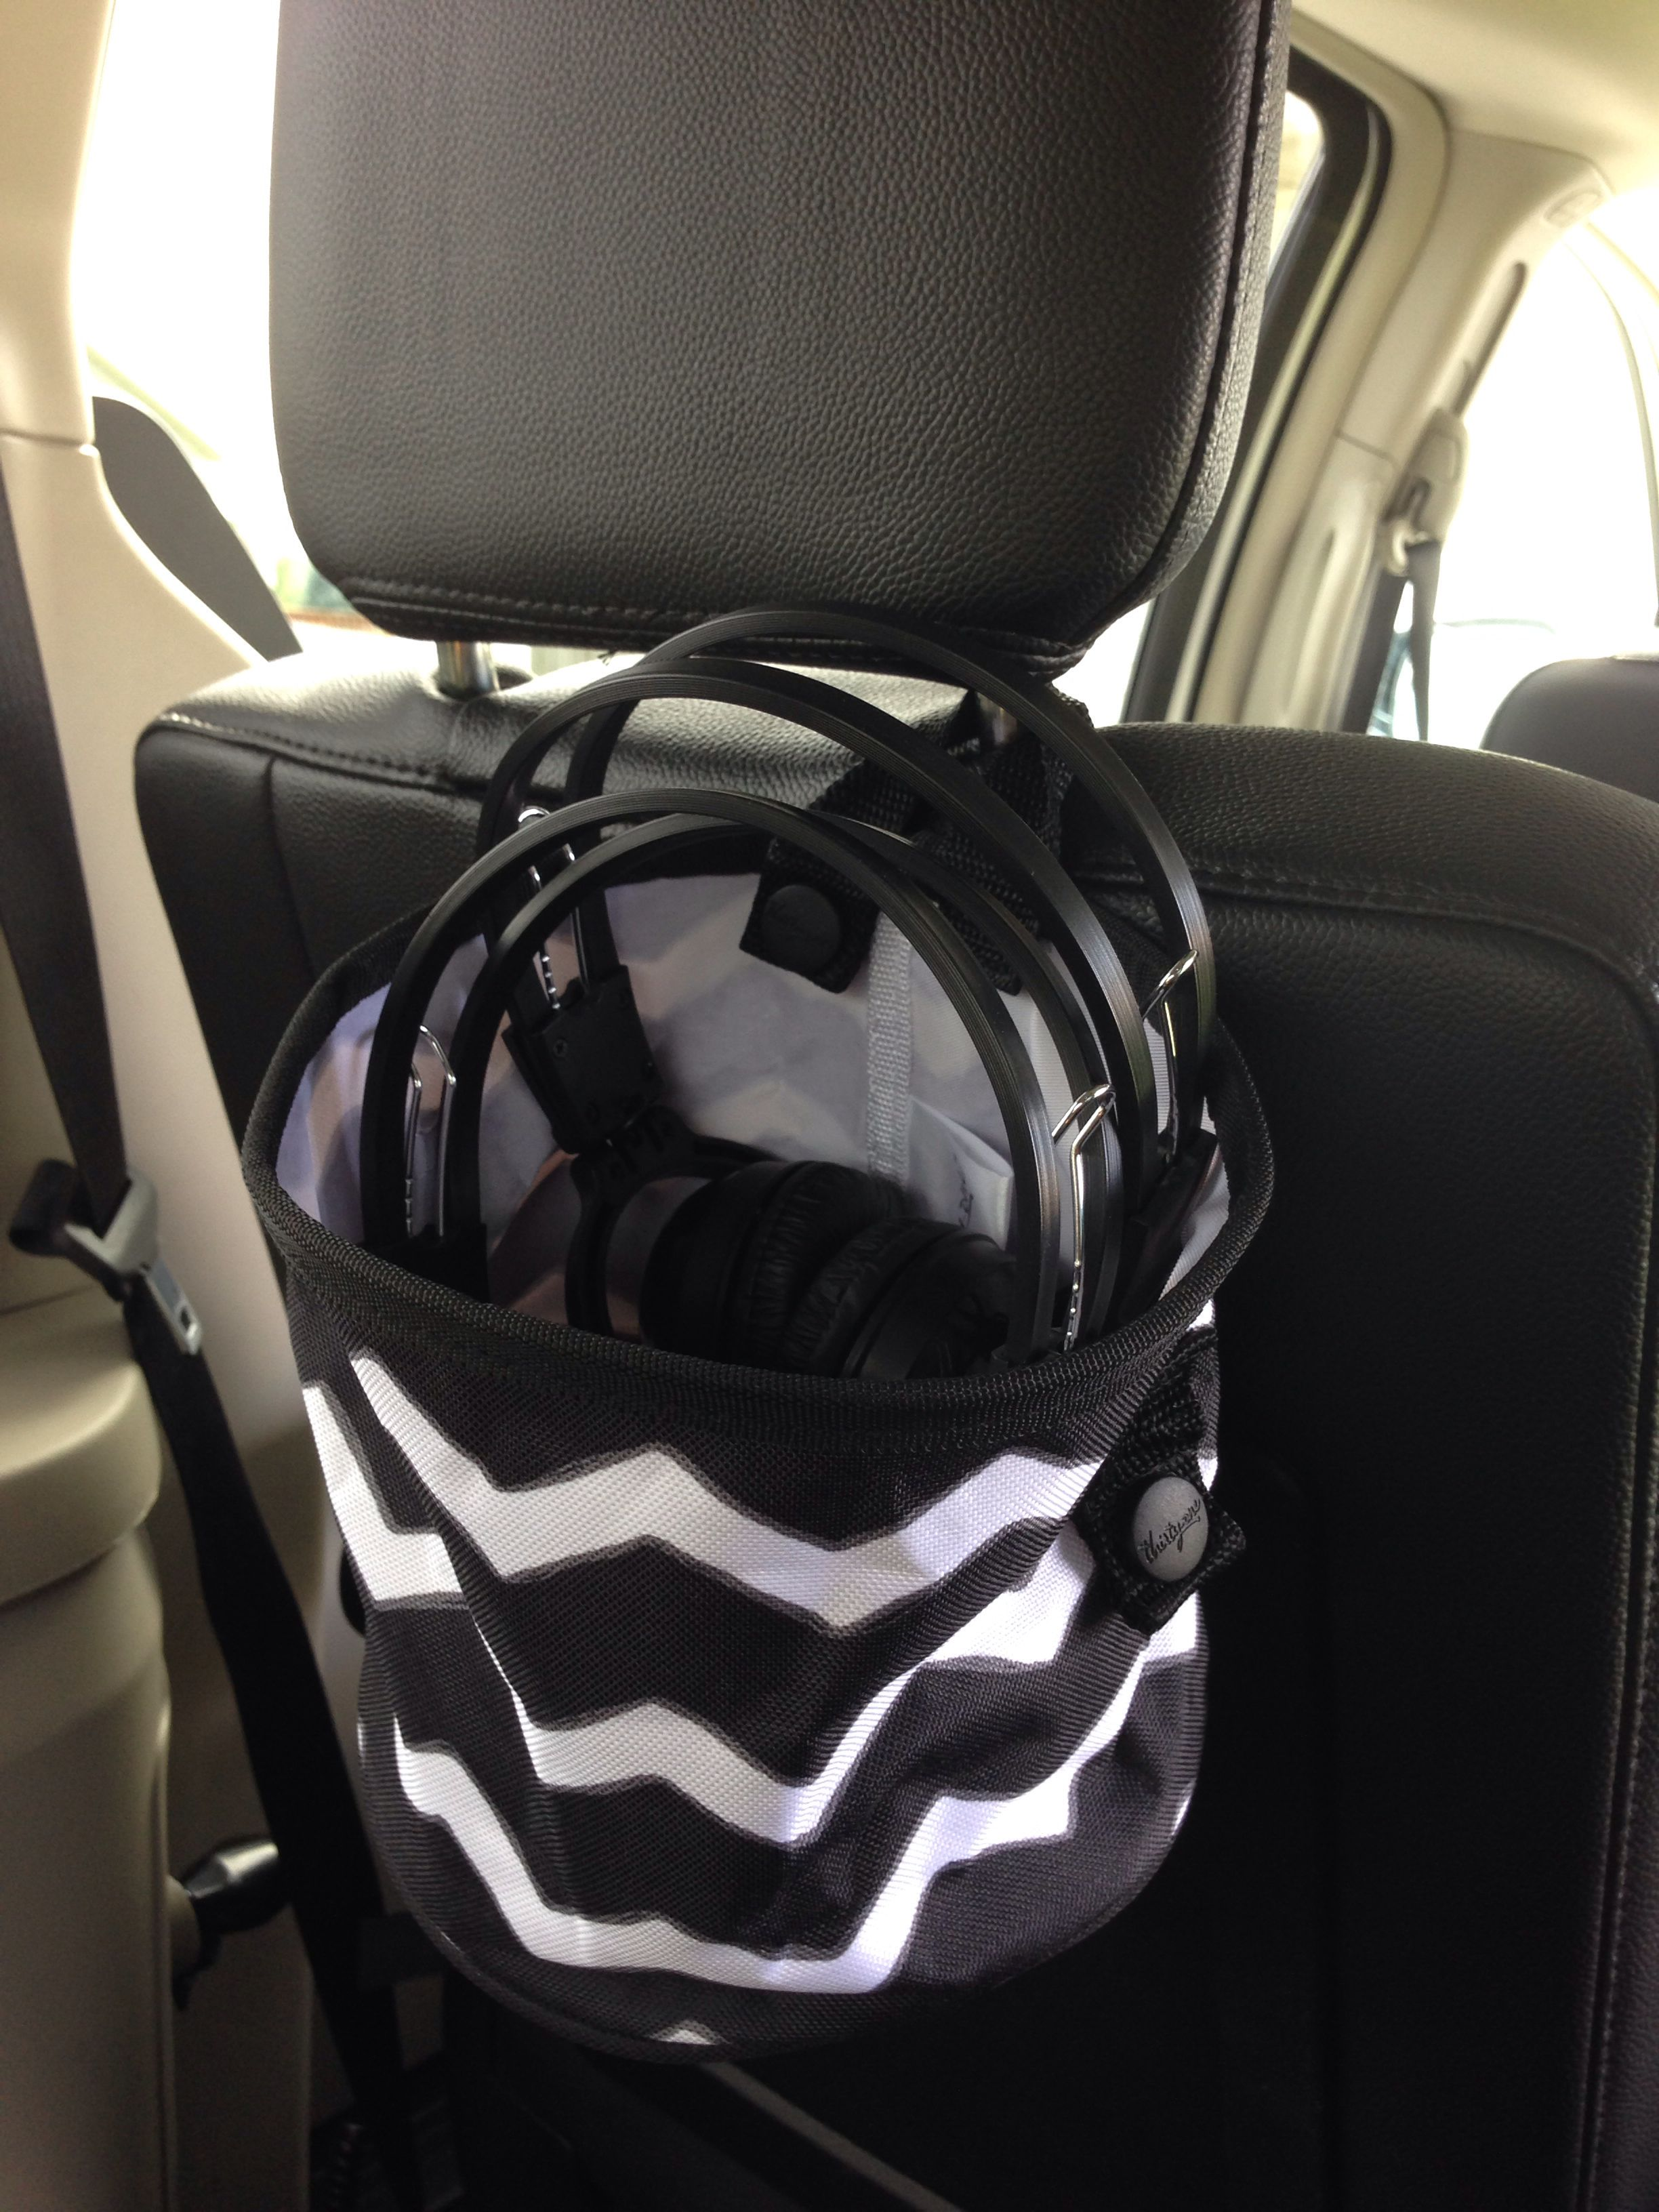 Oh snap bin ideas - Oh Snap Bin Attach One Of These Cuties To The Headrest In Your Car